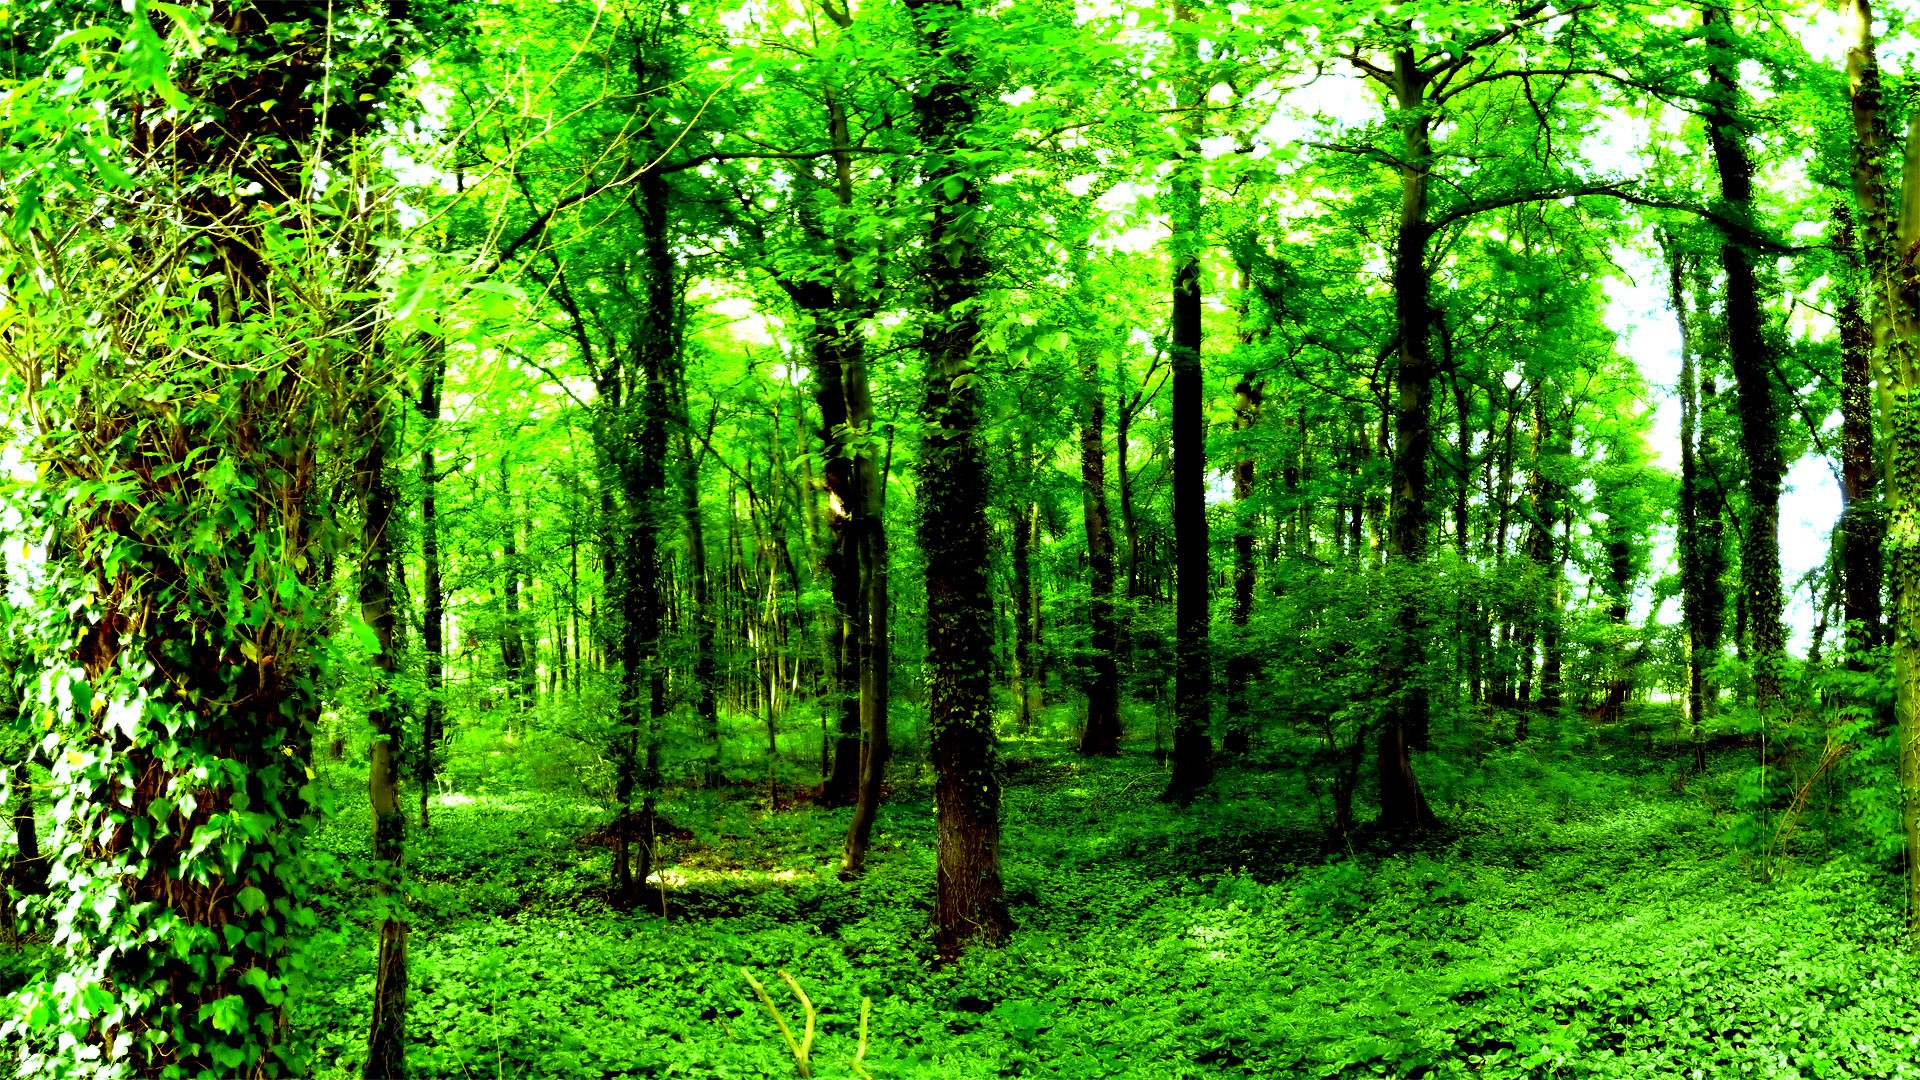 Forest Wallpaper HD ·① Download Free Awesome Backgrounds